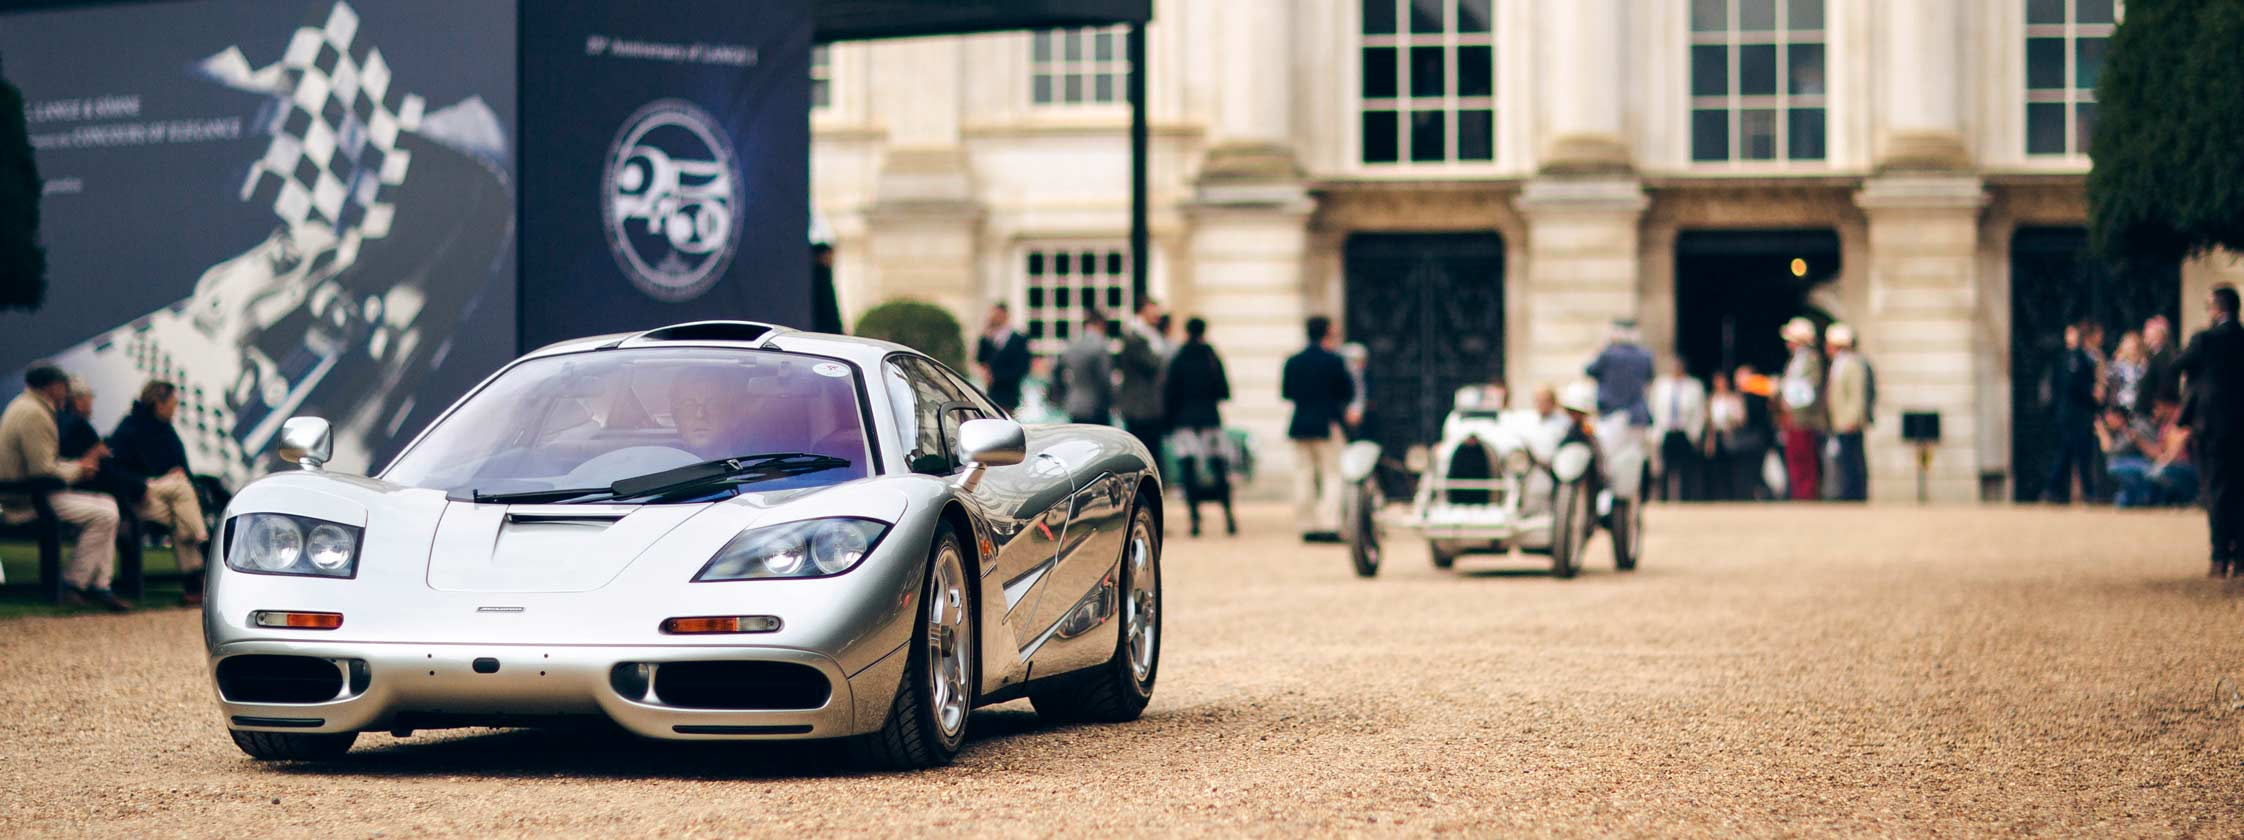 Concours of Elegance Welcomes Chubb as Official Insurance Partner